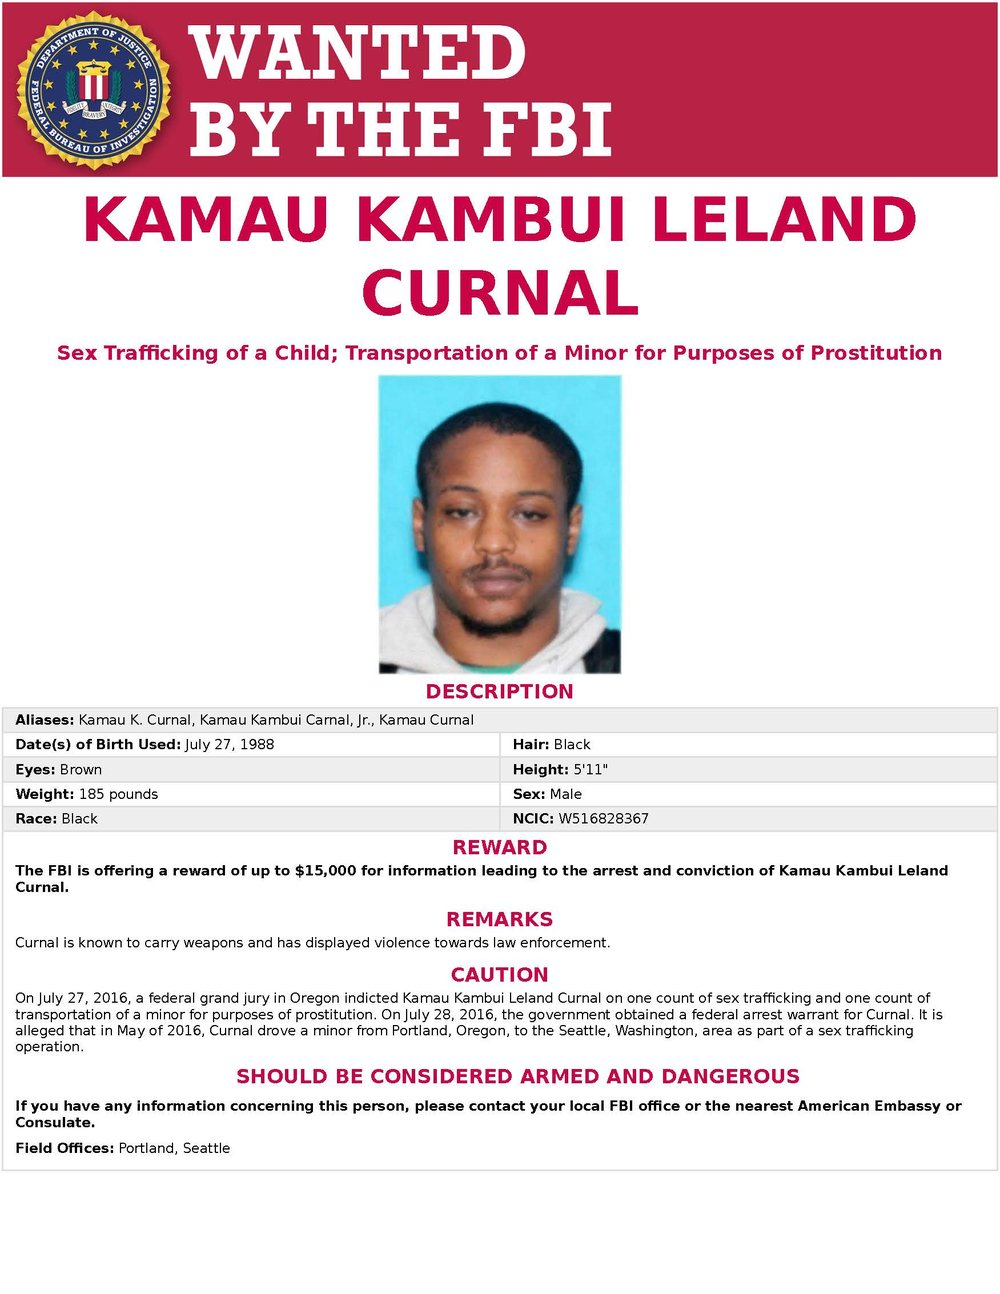 FBI Wanted Poster for Kamau Kambui Leland Curnal